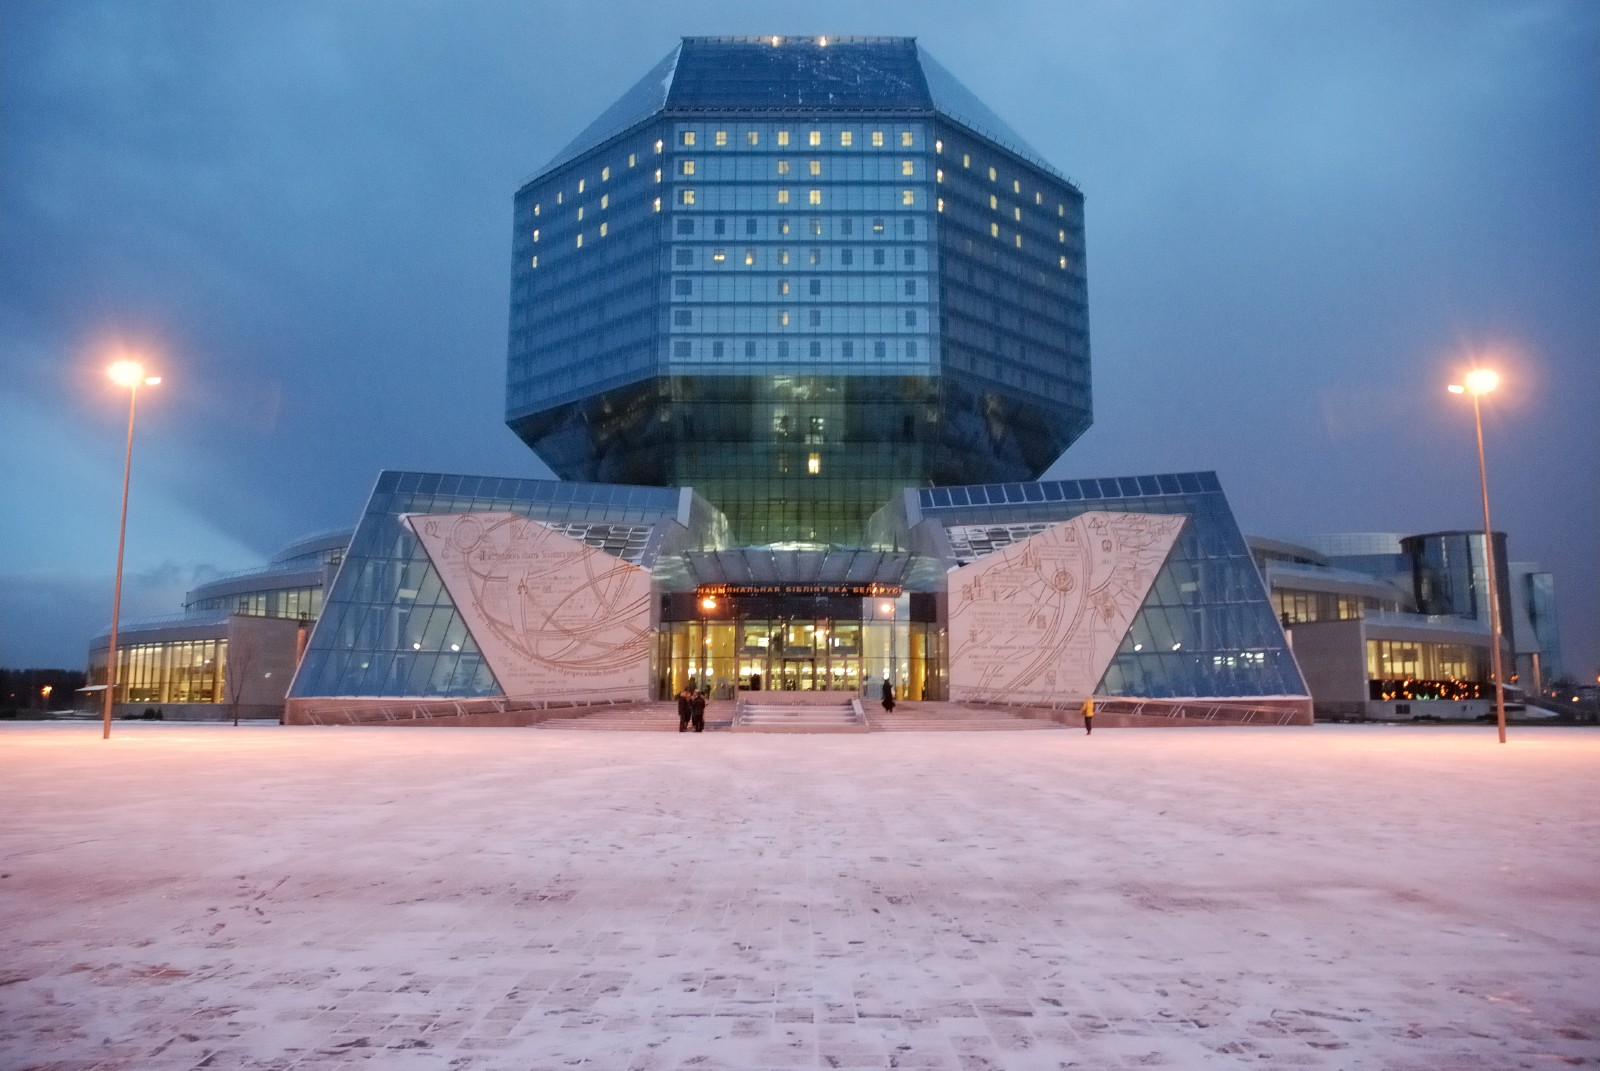 New National library awesome building Belarus Minsk